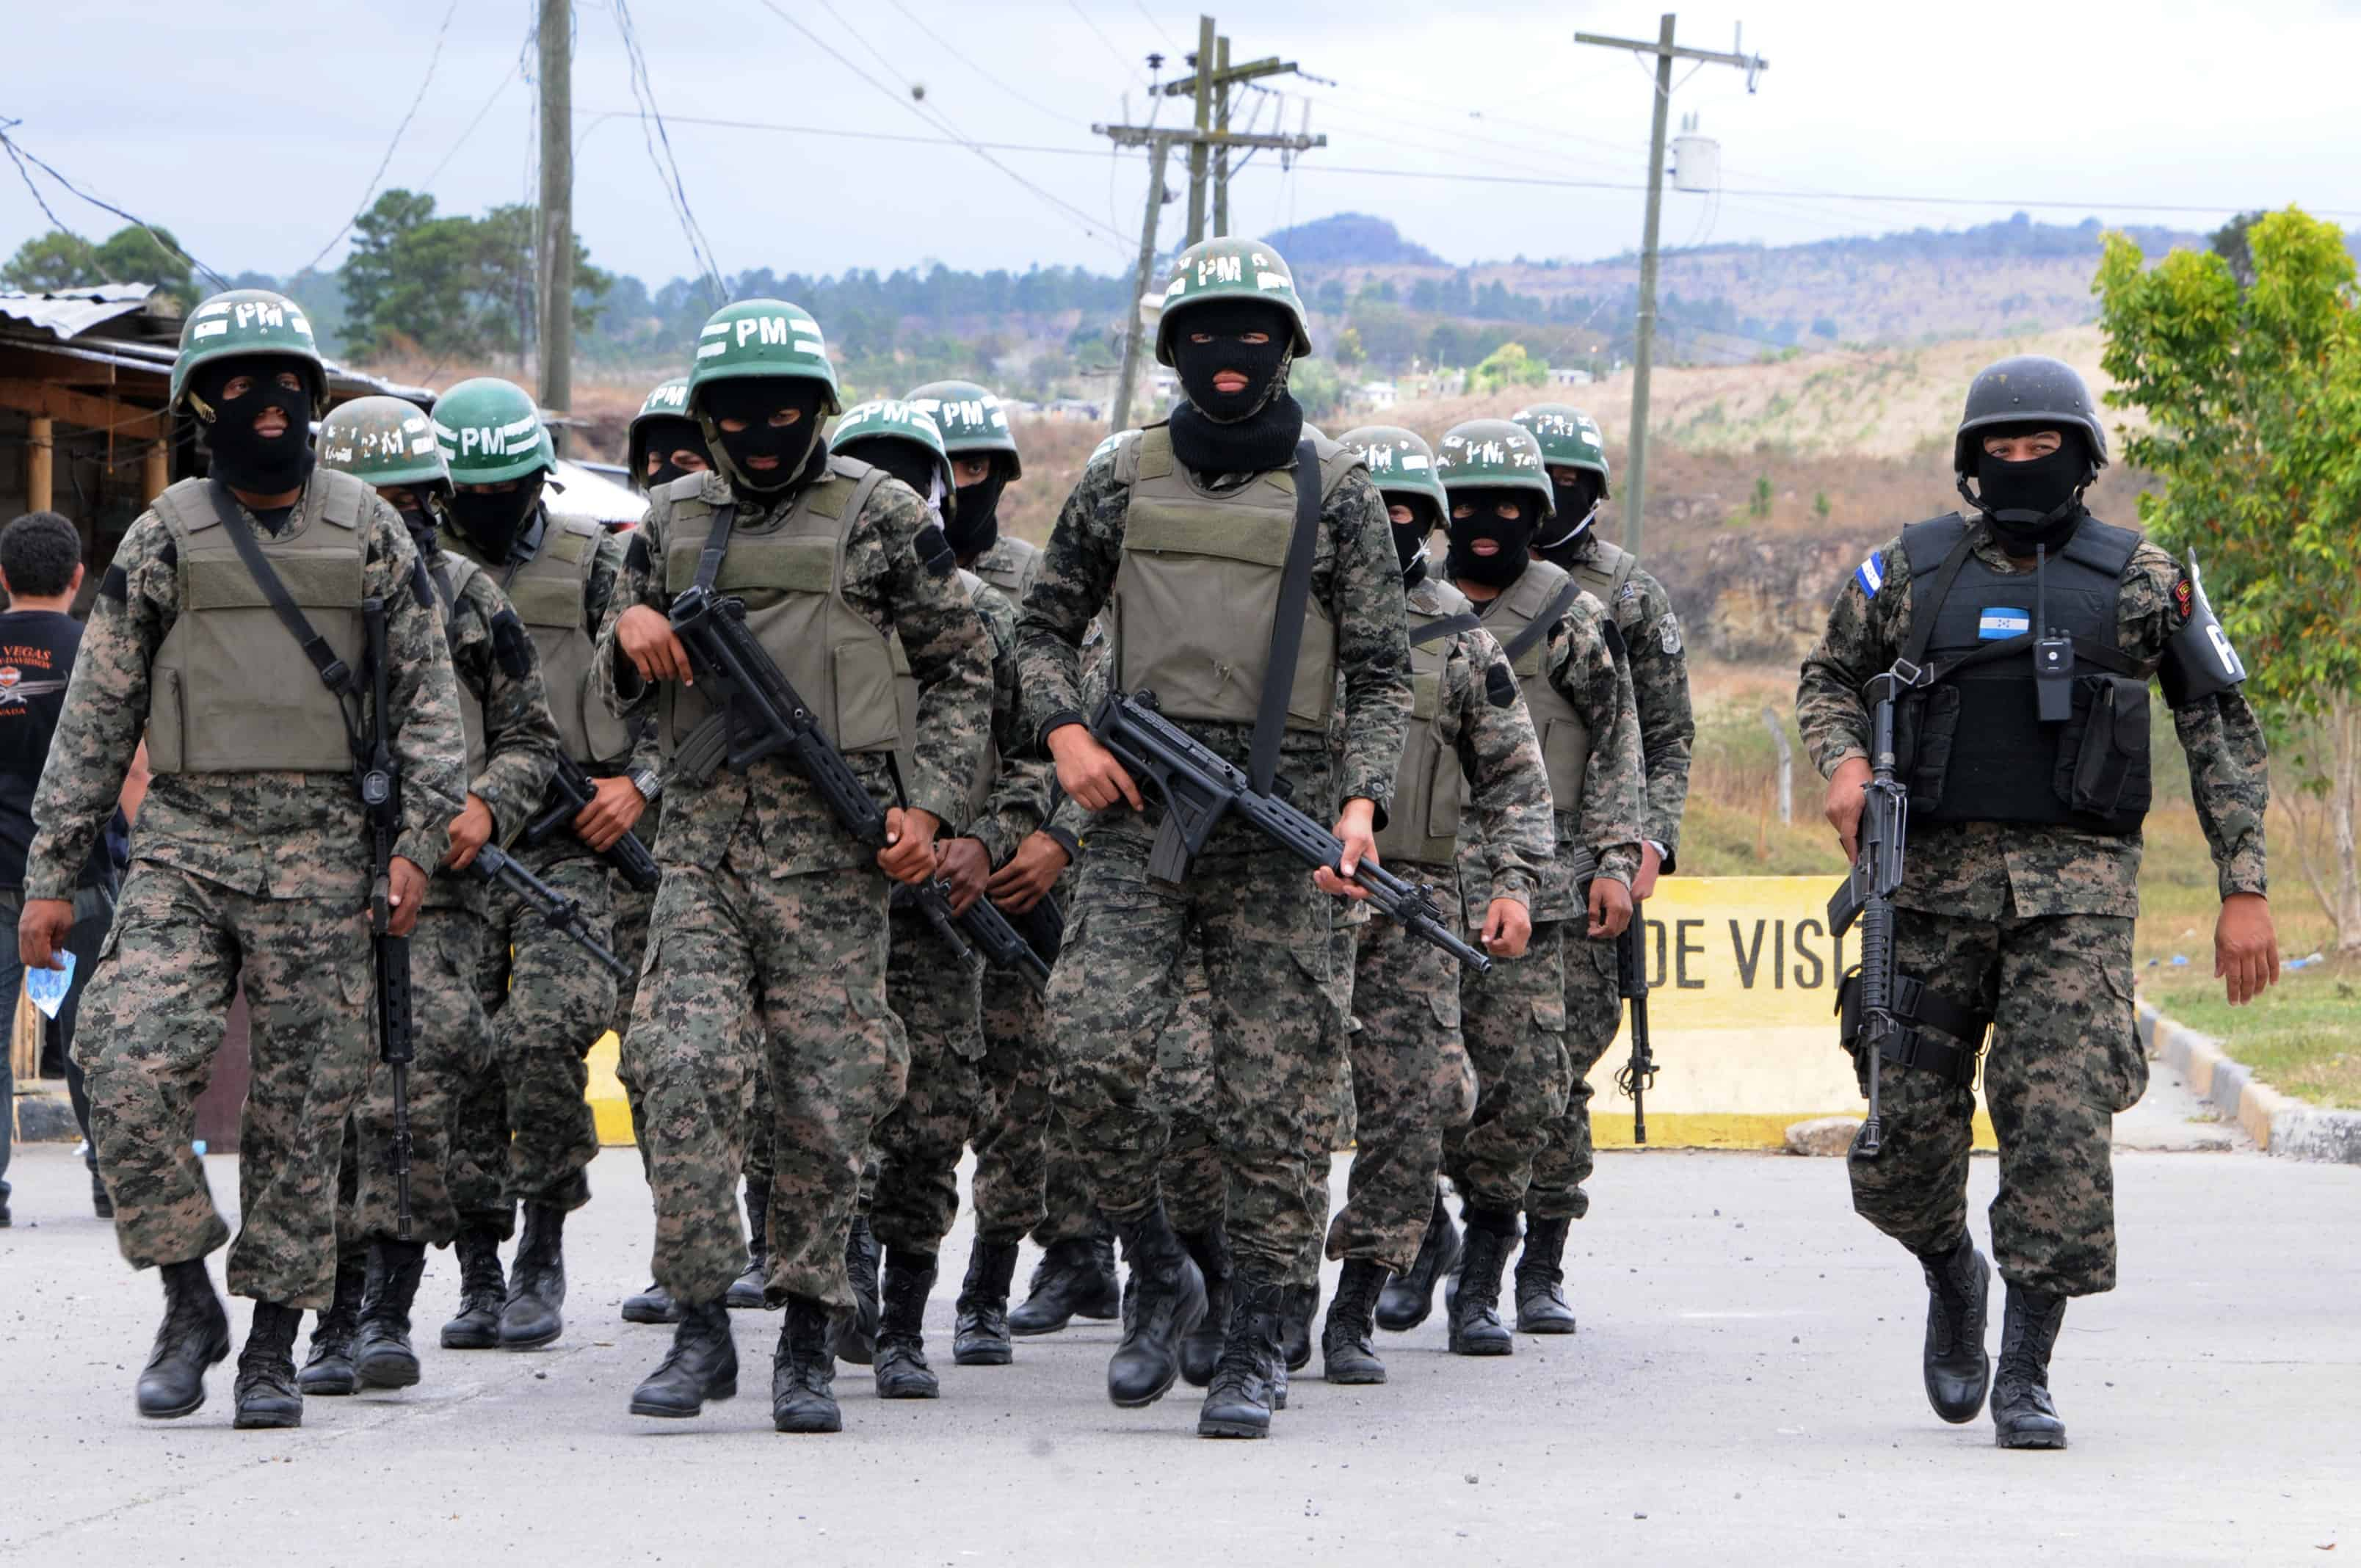 Members of the Honduran military police walk toward the Marco Aurelio Soto National Penitentiary to search for weapons, drugs and cell phones in Valle en Tamara, 25kms north of Tegucigalpa, on Febraury 25, 2014.